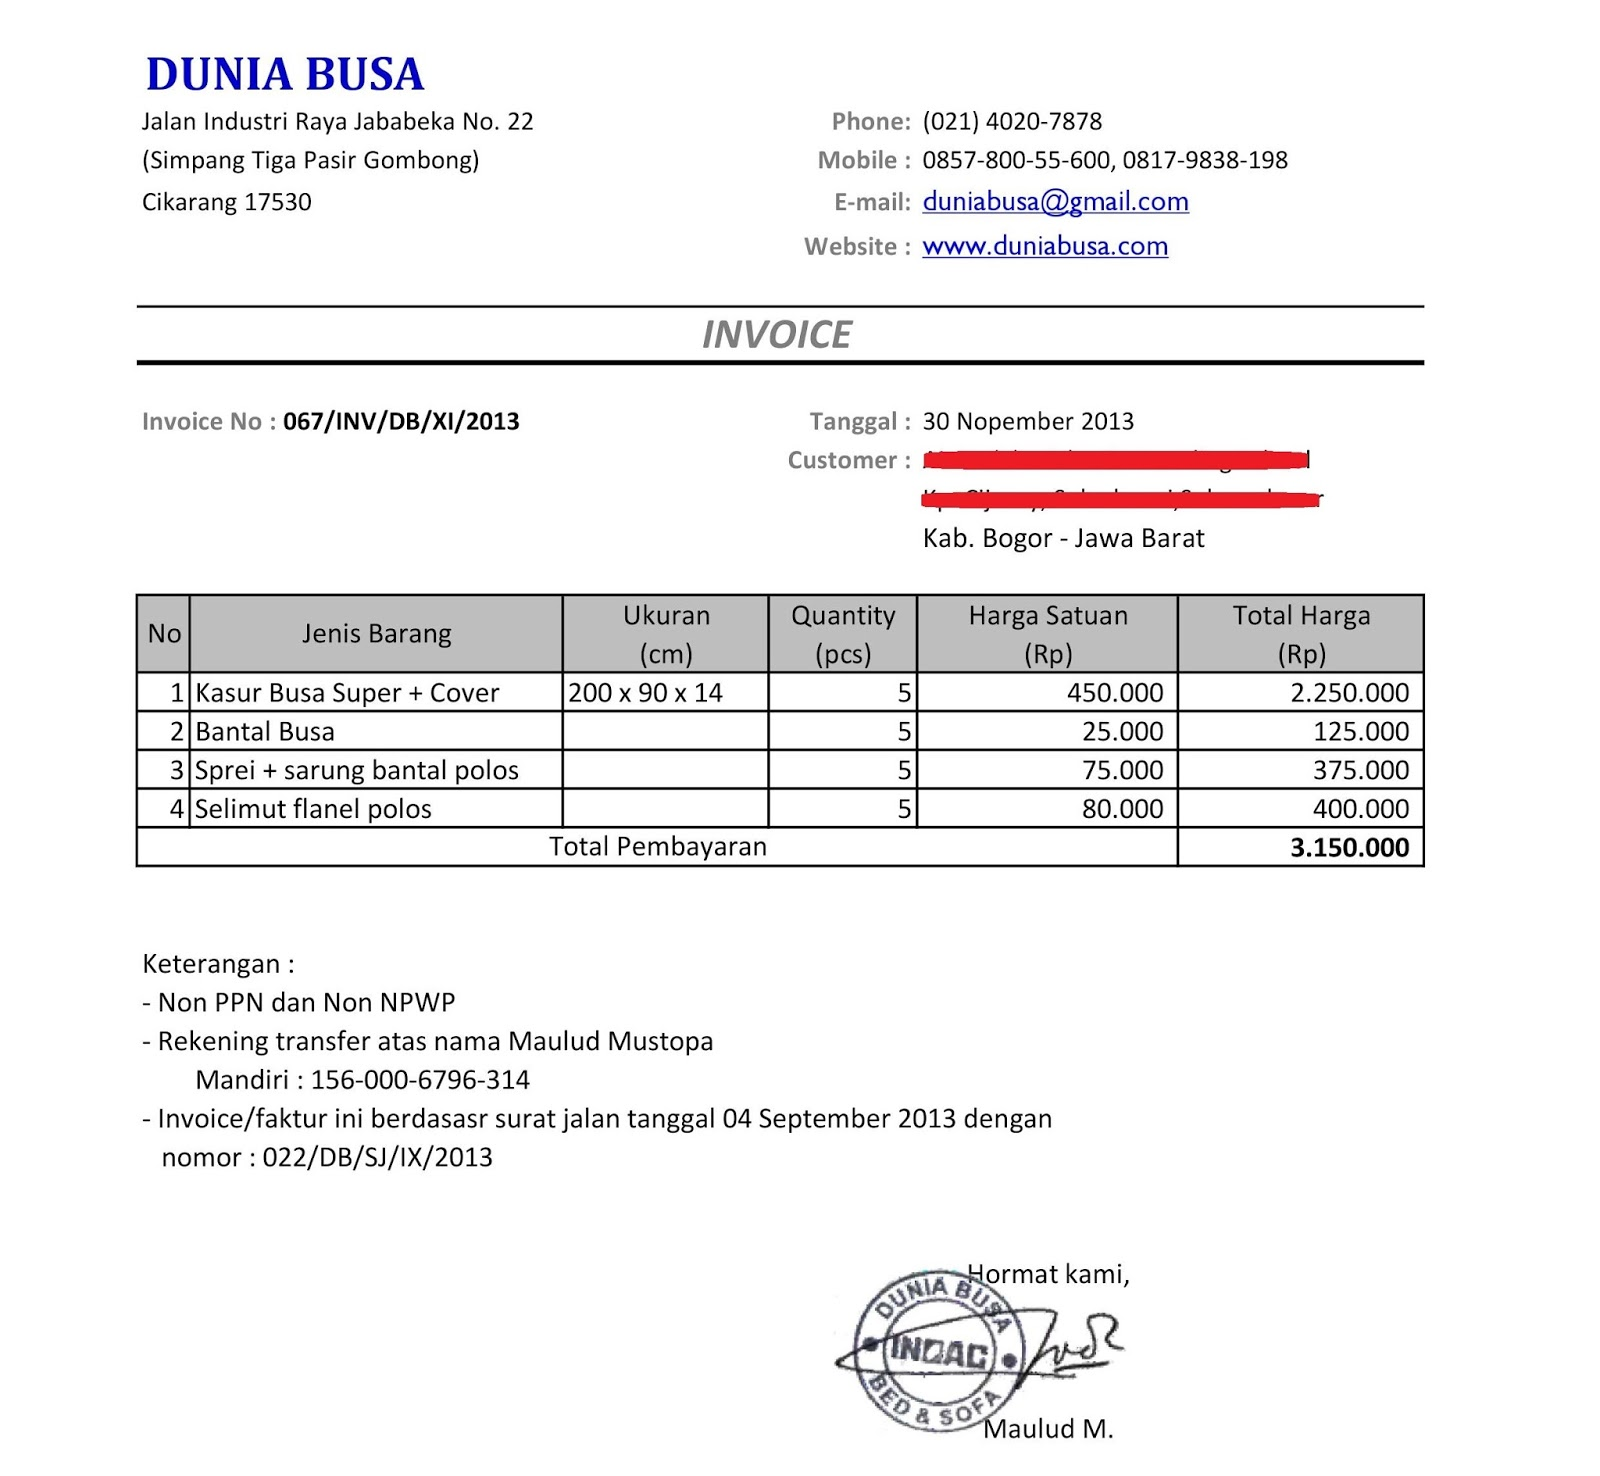 Centralasianshepherdus  Terrific Free Invoice Online  Create Invoice Online  Invoice Template  With Outstanding Contoh Format Invoice Atau Surat Tagihan  Brankas Arsip  Free Invoice Online With Alluring Post Office Receipt Number Also Sample Of Sales Receipt In Addition How To Make A Sales Receipt And Sample Acknowledgment Receipt As Well As Official Receipt Sample Additionally Hdfc Life Insurance Premium Receipt From Sklepco With Centralasianshepherdus  Outstanding Free Invoice Online  Create Invoice Online  Invoice Template  With Alluring Contoh Format Invoice Atau Surat Tagihan  Brankas Arsip  Free Invoice Online And Terrific Post Office Receipt Number Also Sample Of Sales Receipt In Addition How To Make A Sales Receipt From Sklepco